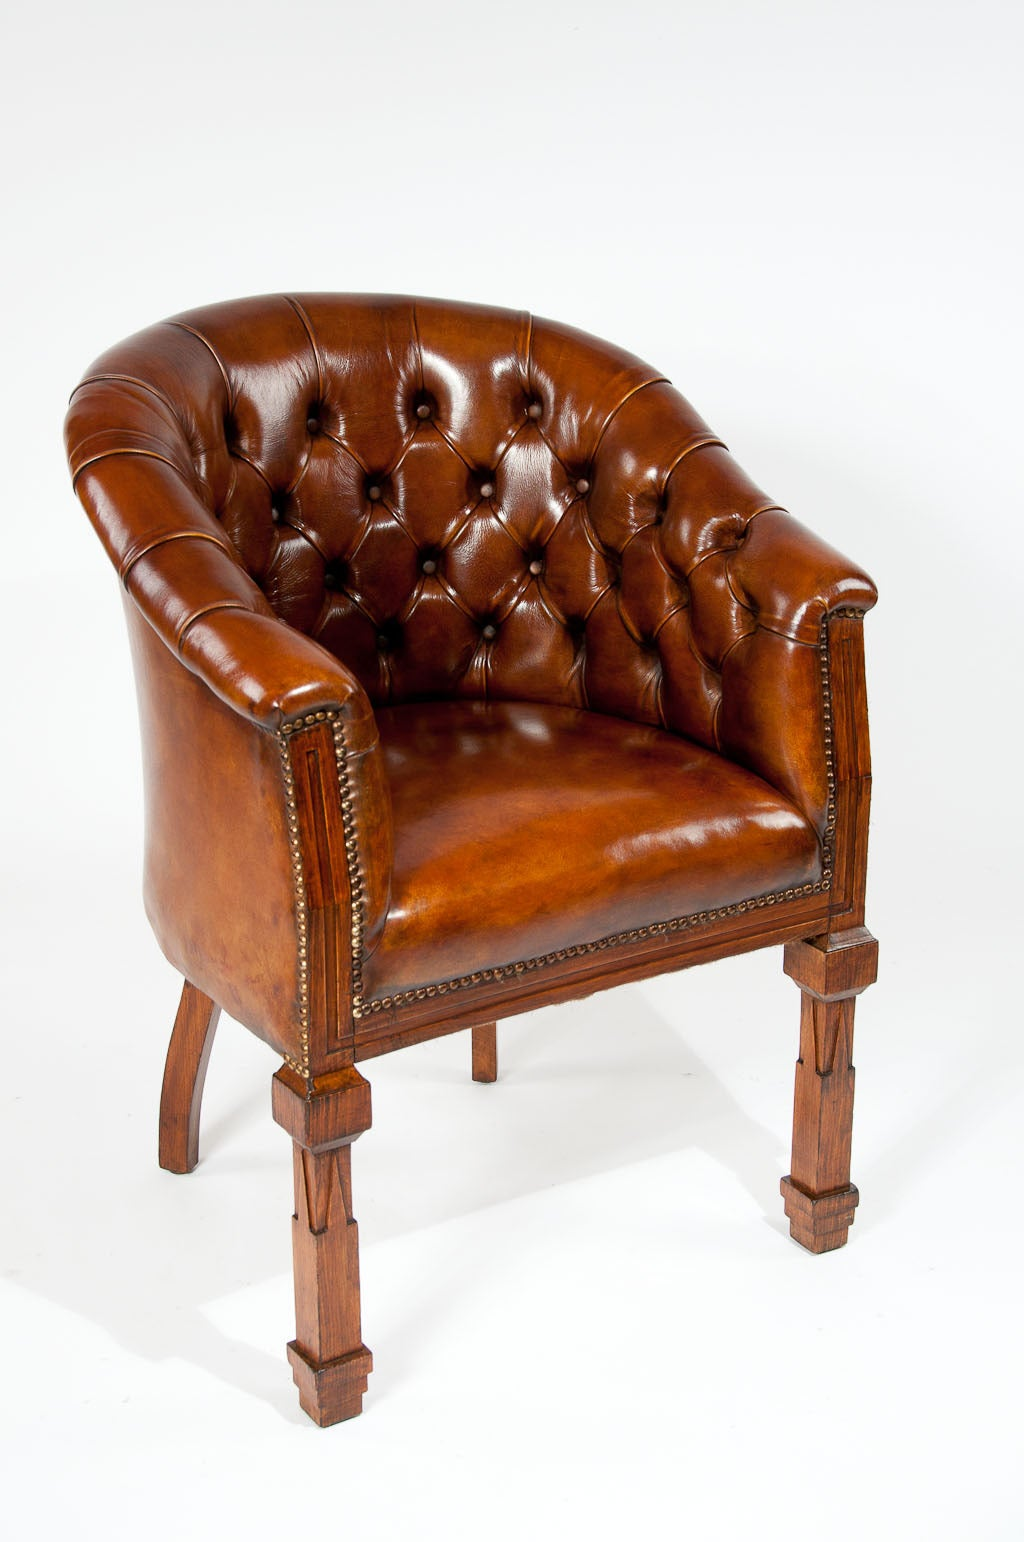 Antique tub chairs - Antique Pair Of Leather Tub Chairs 3